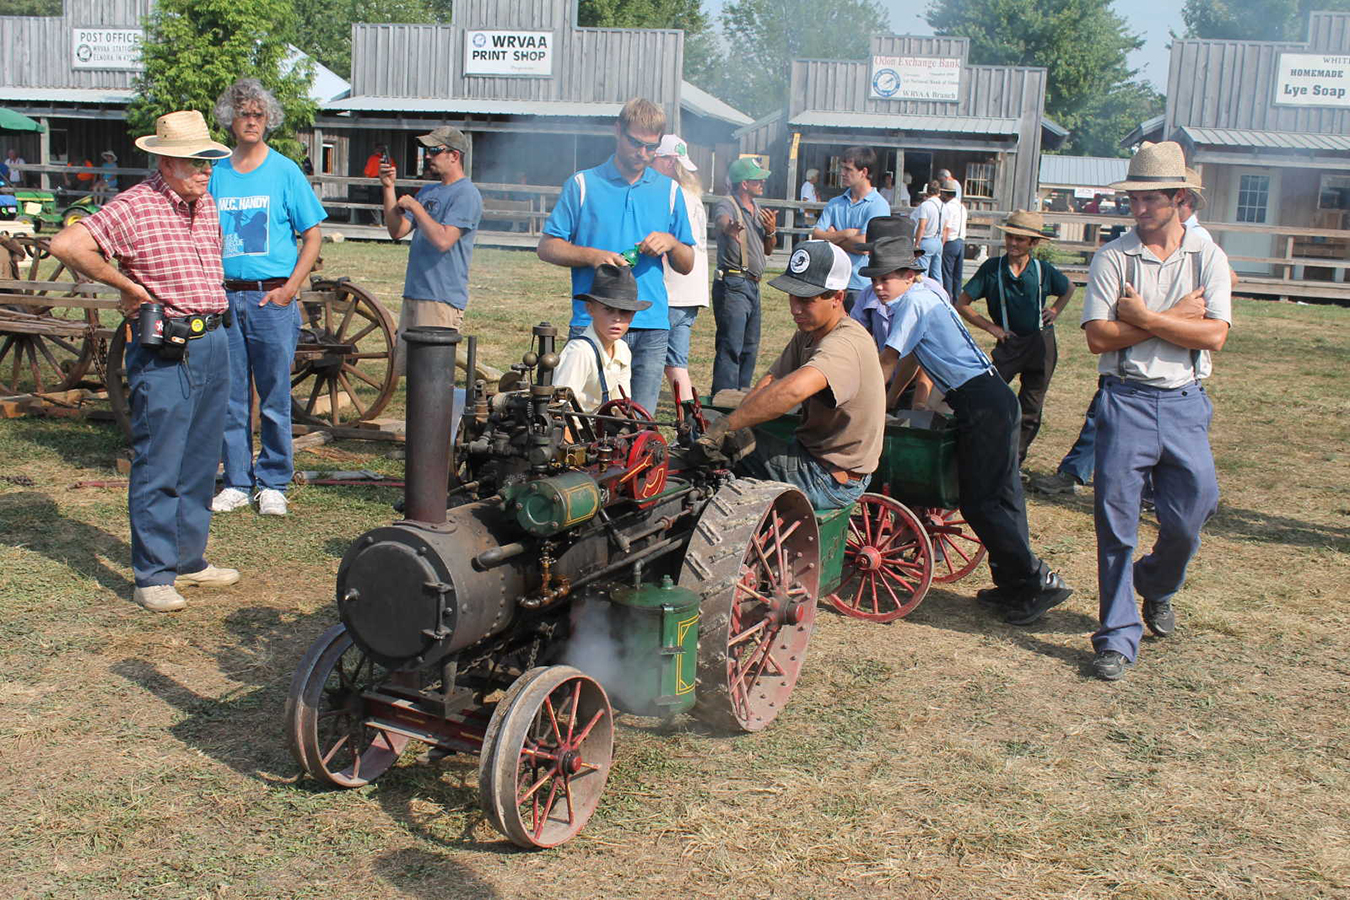 In Elnora, tractors of all sizes are displayed. | Photo courtesy of the Greene County Daily World